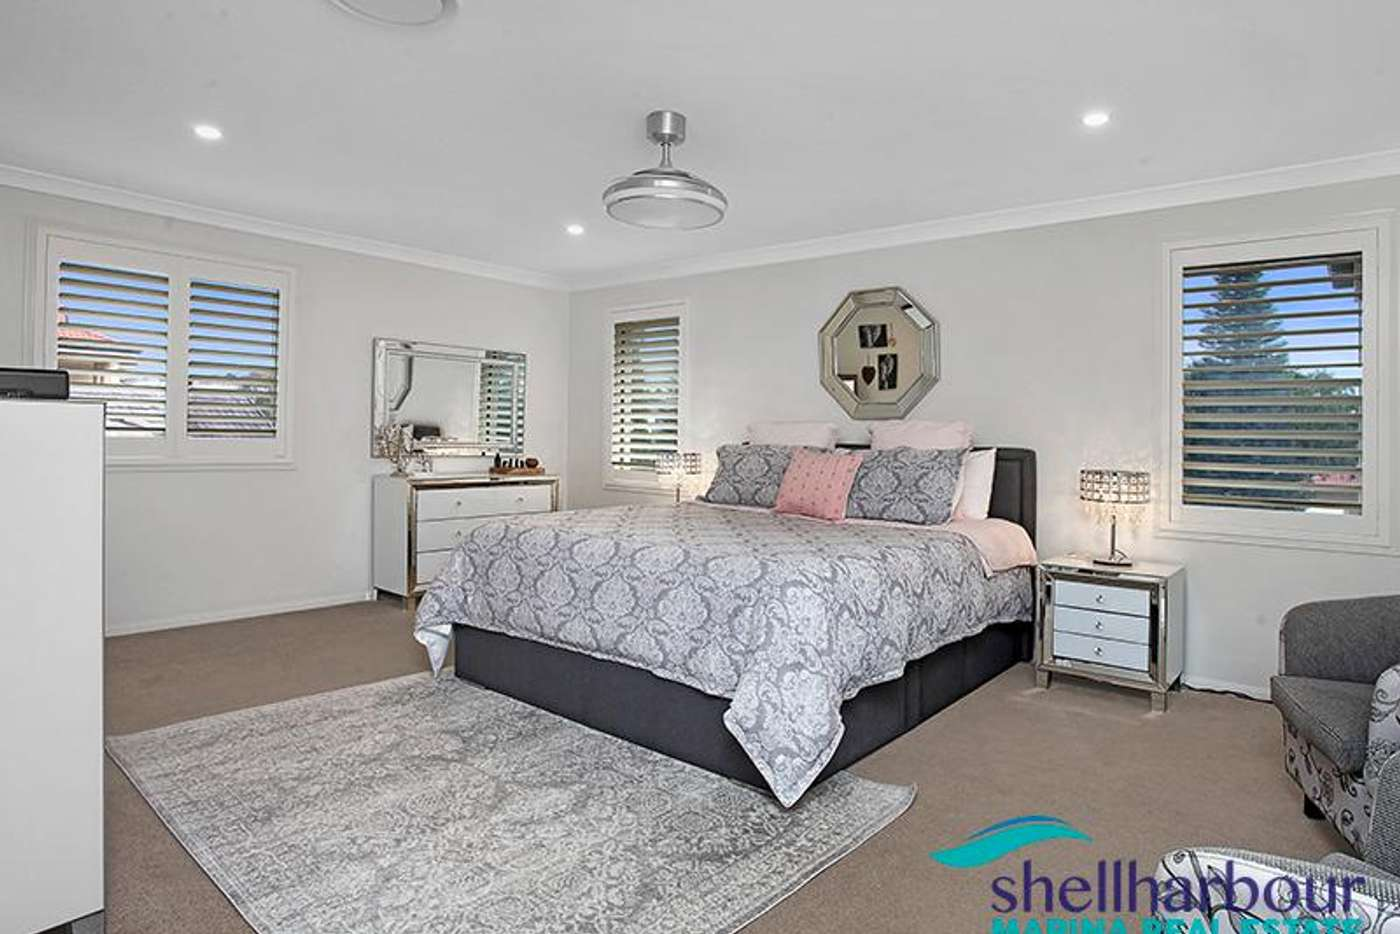 Seventh view of Homely house listing, 24 Cove Boulevard, Shell Cove NSW 2529